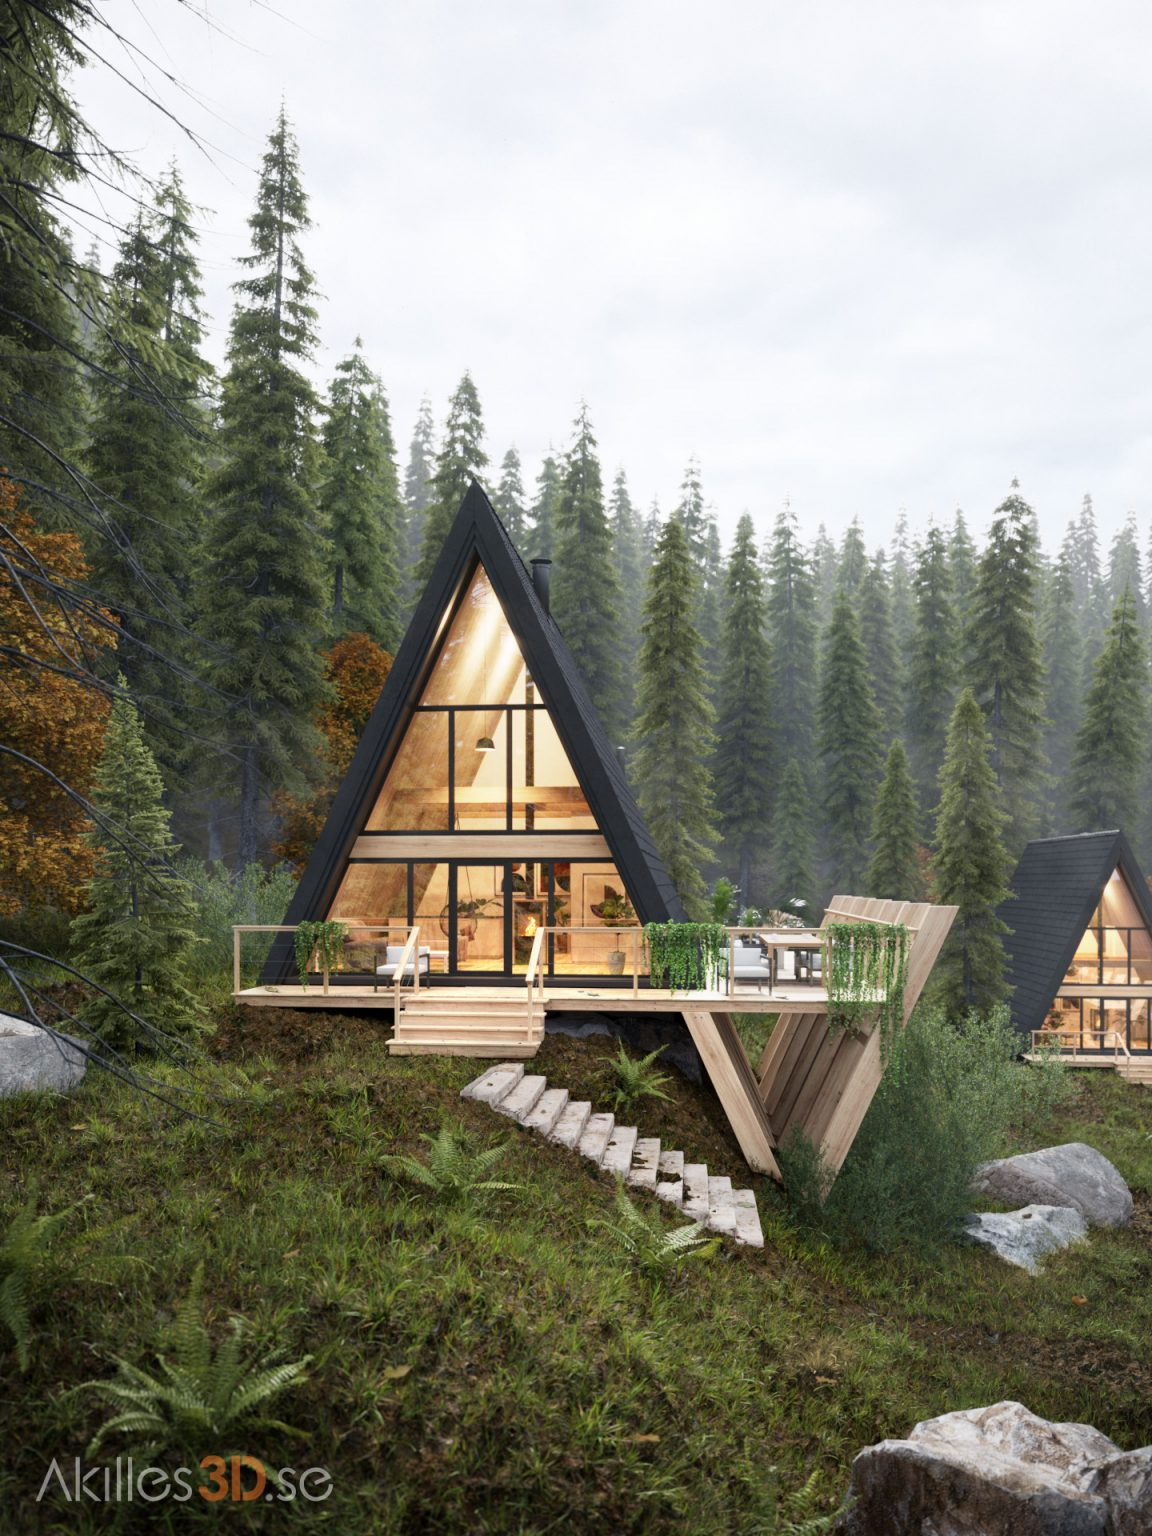 Cabins in the forest 2 - fog pines realistic 3D visualization exterior architecture CGI high-end top quality